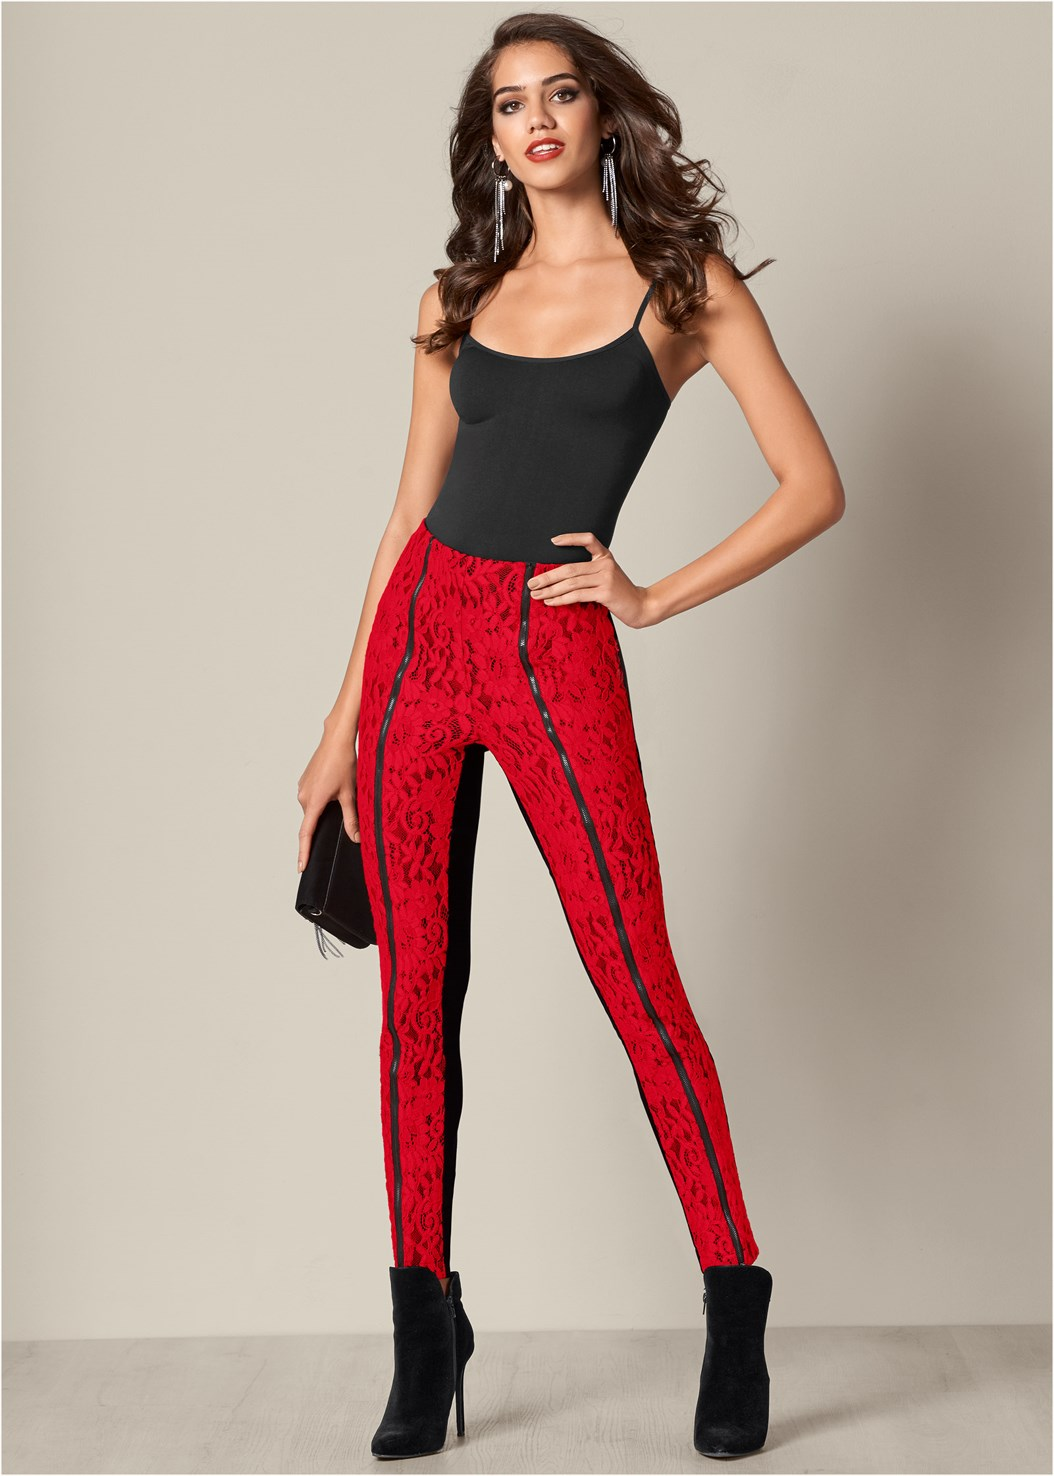 Lace Front Leggings,Seamless Cami,Faux Suede Pointy Booties,Rhinestone Fringe Earrings